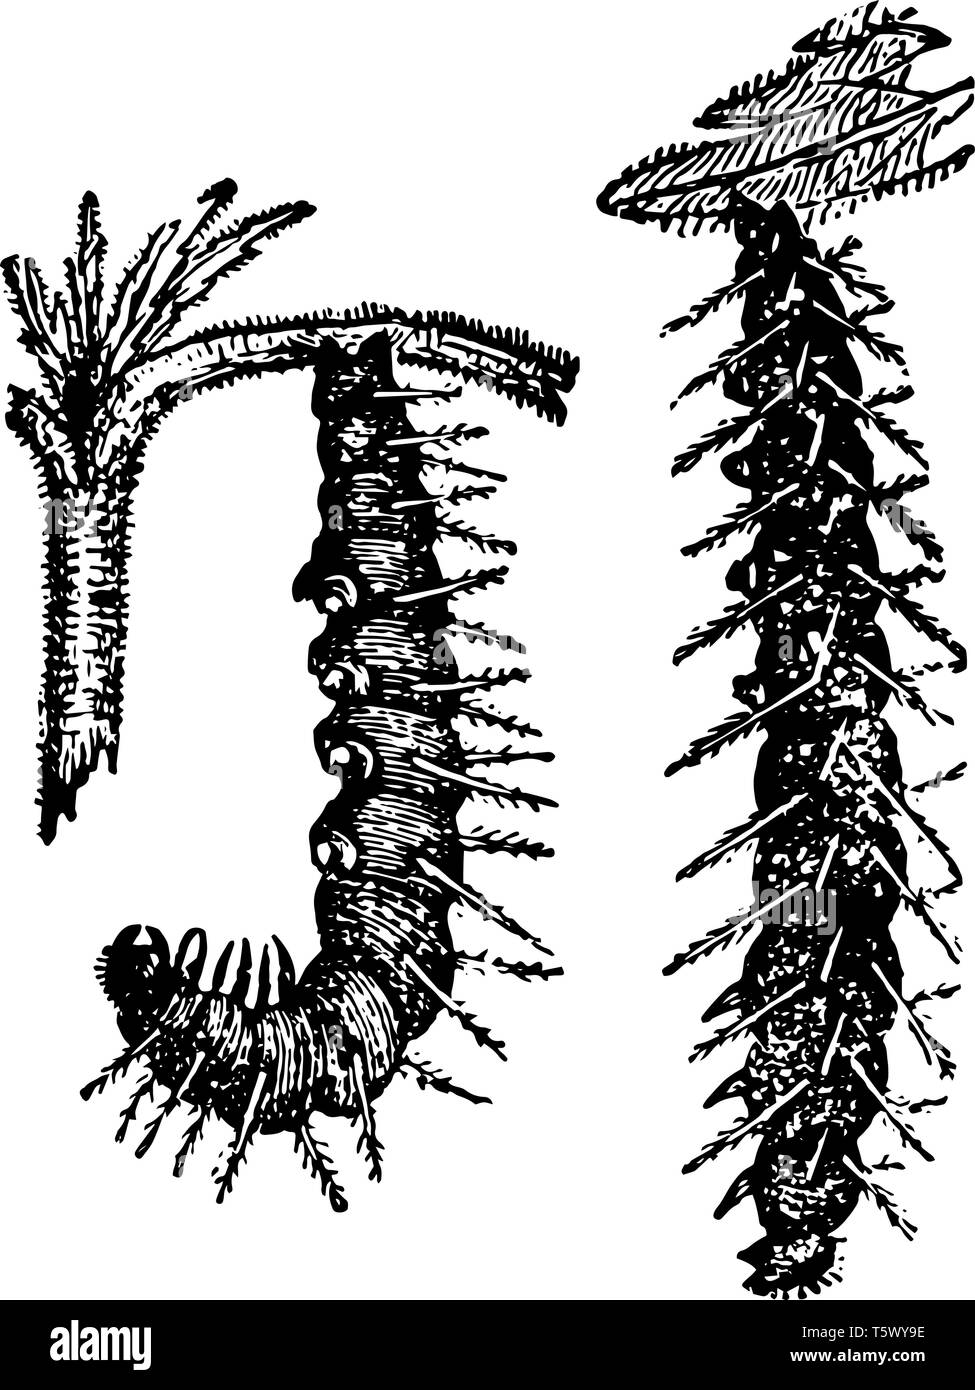 This image represents Caterpillars of the Small Tortoise shell Butterfly Undergoing Their Metamorphoses vintage line drawing or engraving illustration - Stock Image